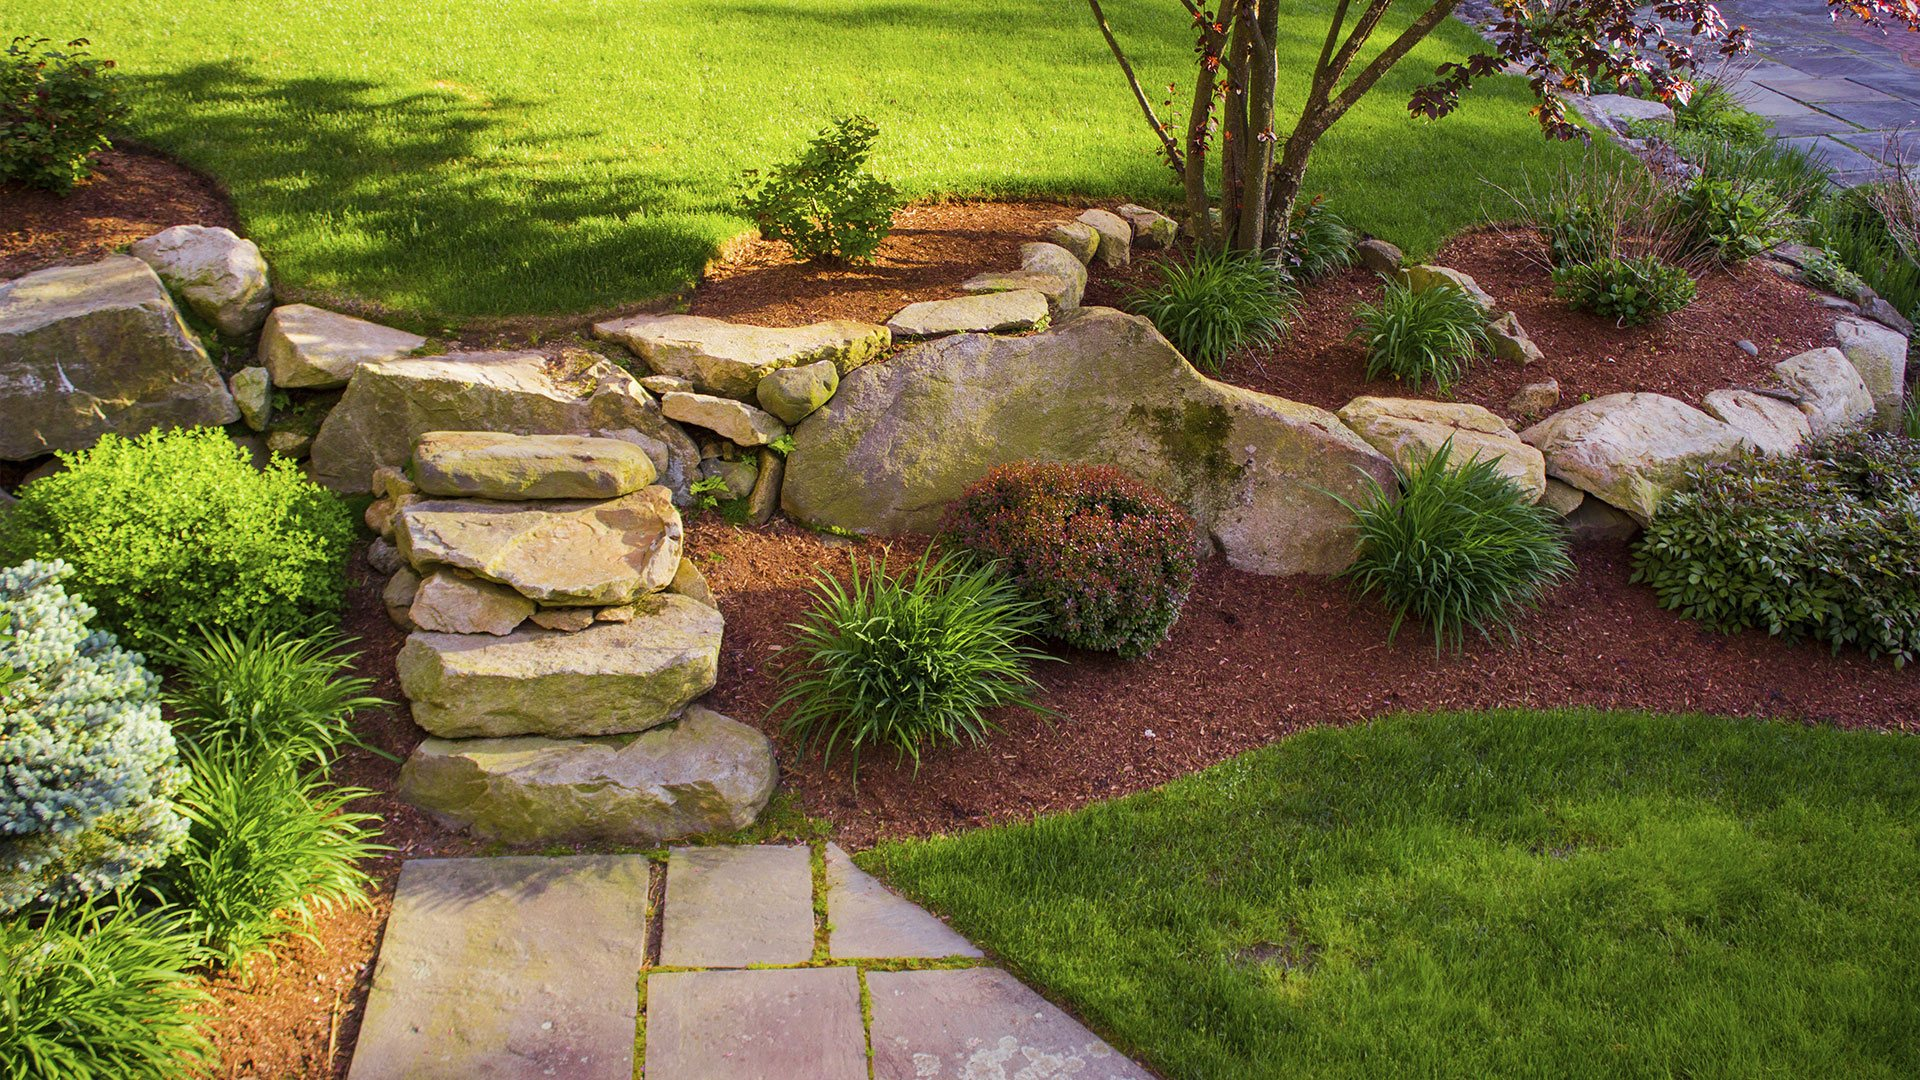 Home | Screven Landscape Maintenance, Landscaping and Lawn Care